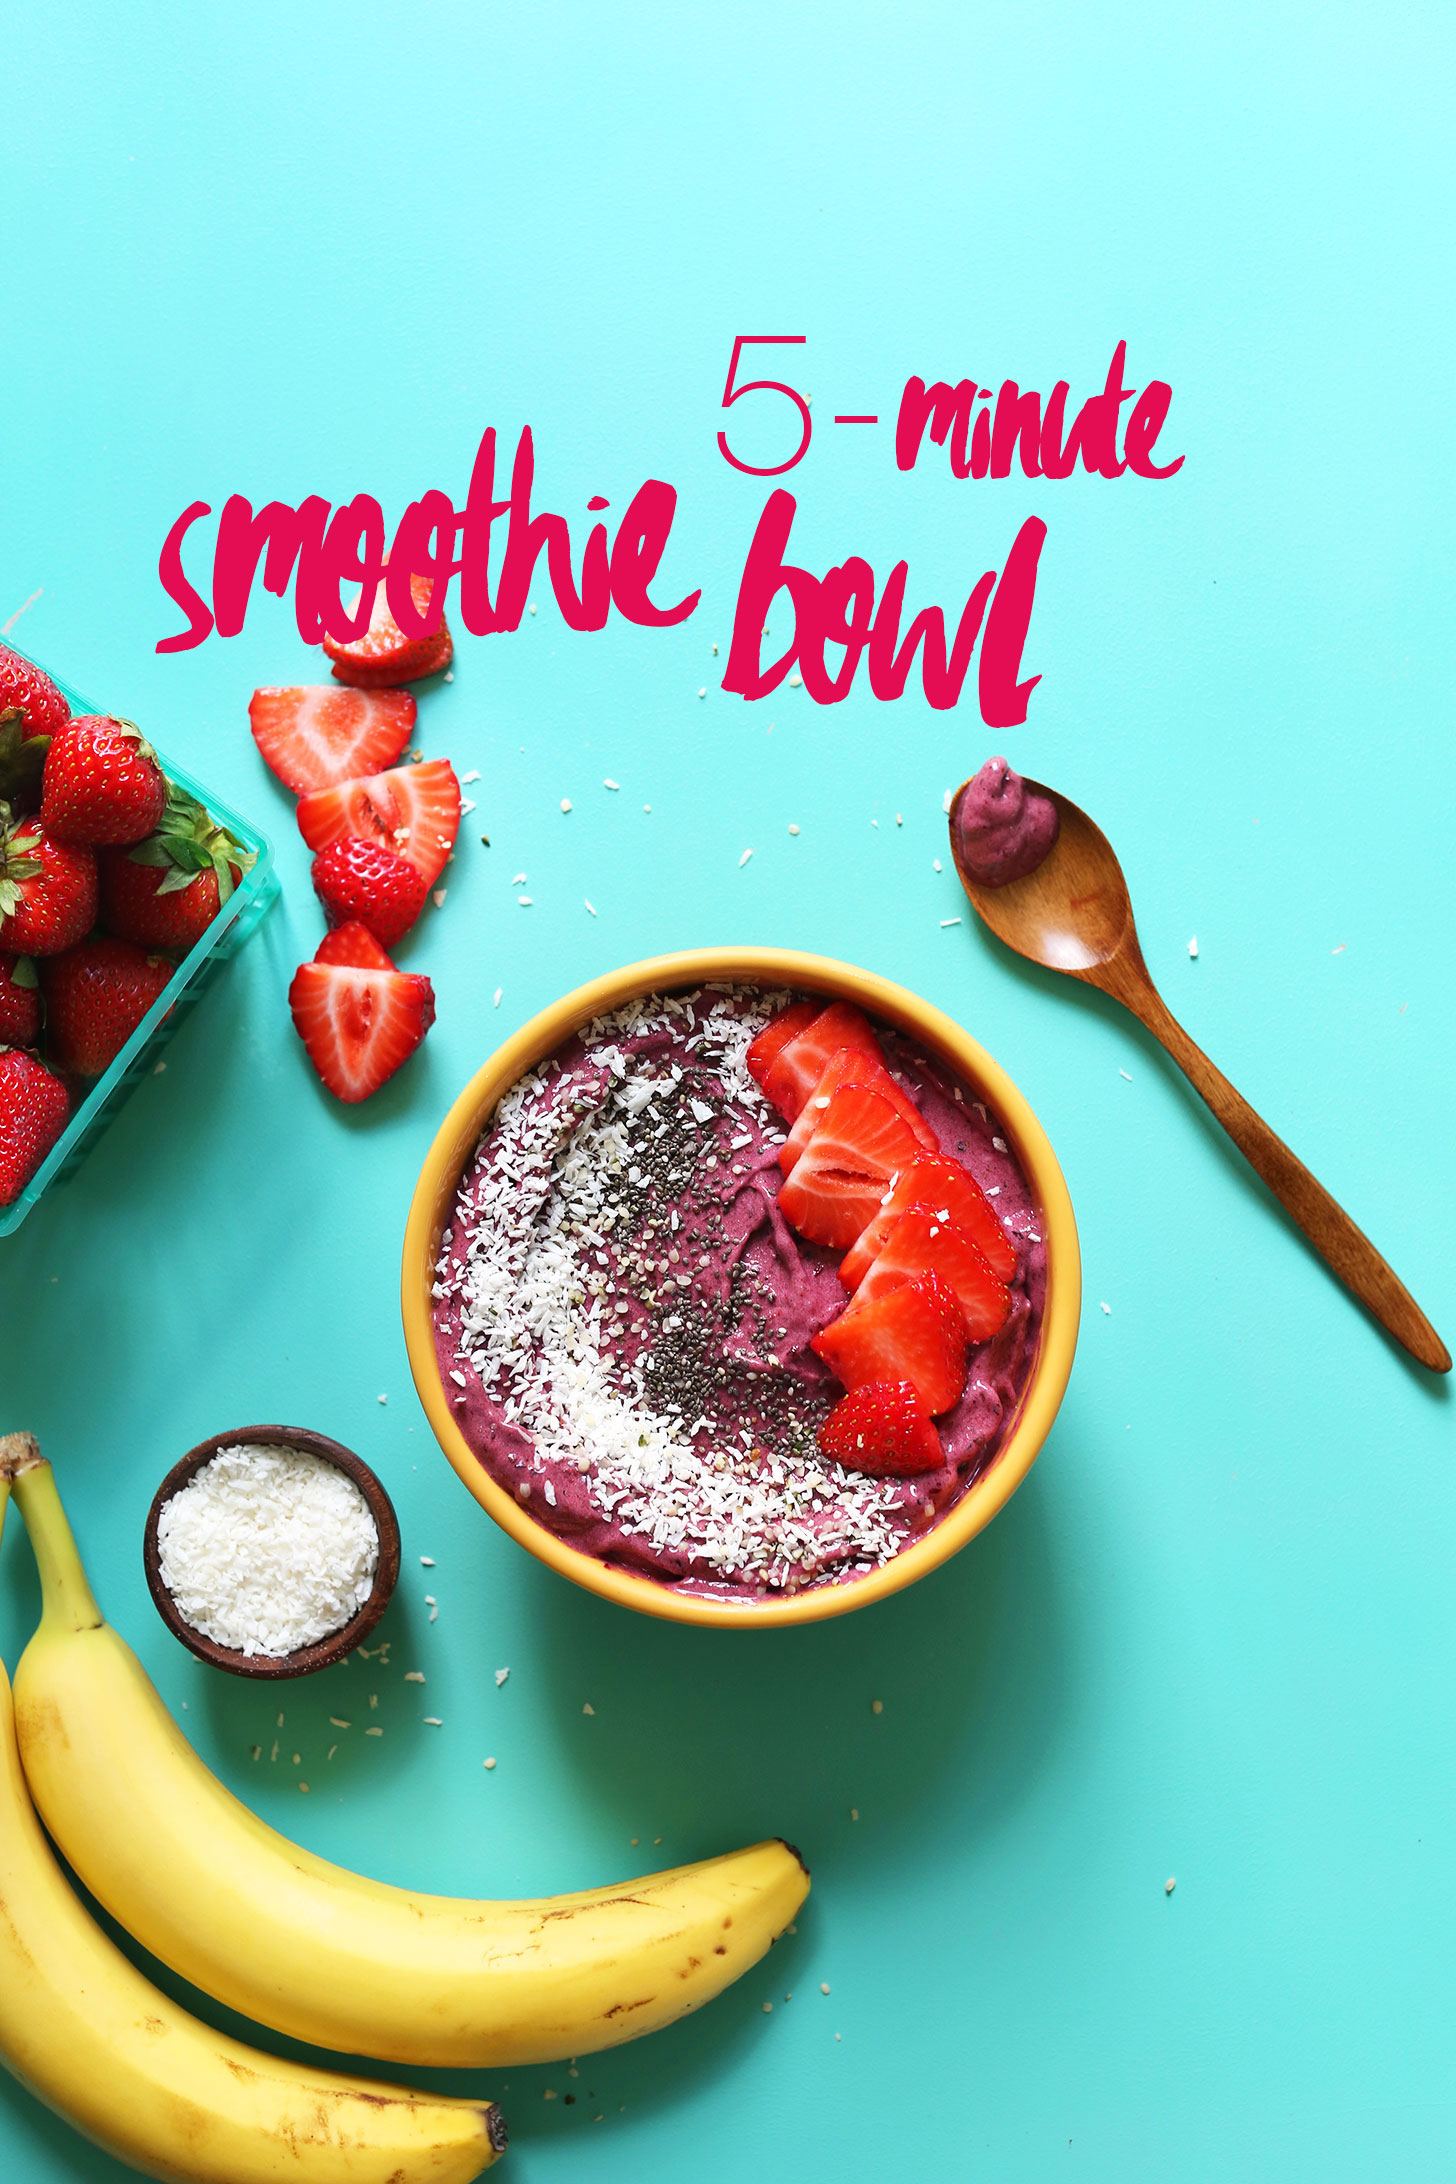 How to make the PERFECT 5-MINUTE Smoothie Bowl! Simple ingredients, naturally sweet, SO healthy! #vegan #glutenfree #smoothiebowl #recipe #healthy #minimalistbaker